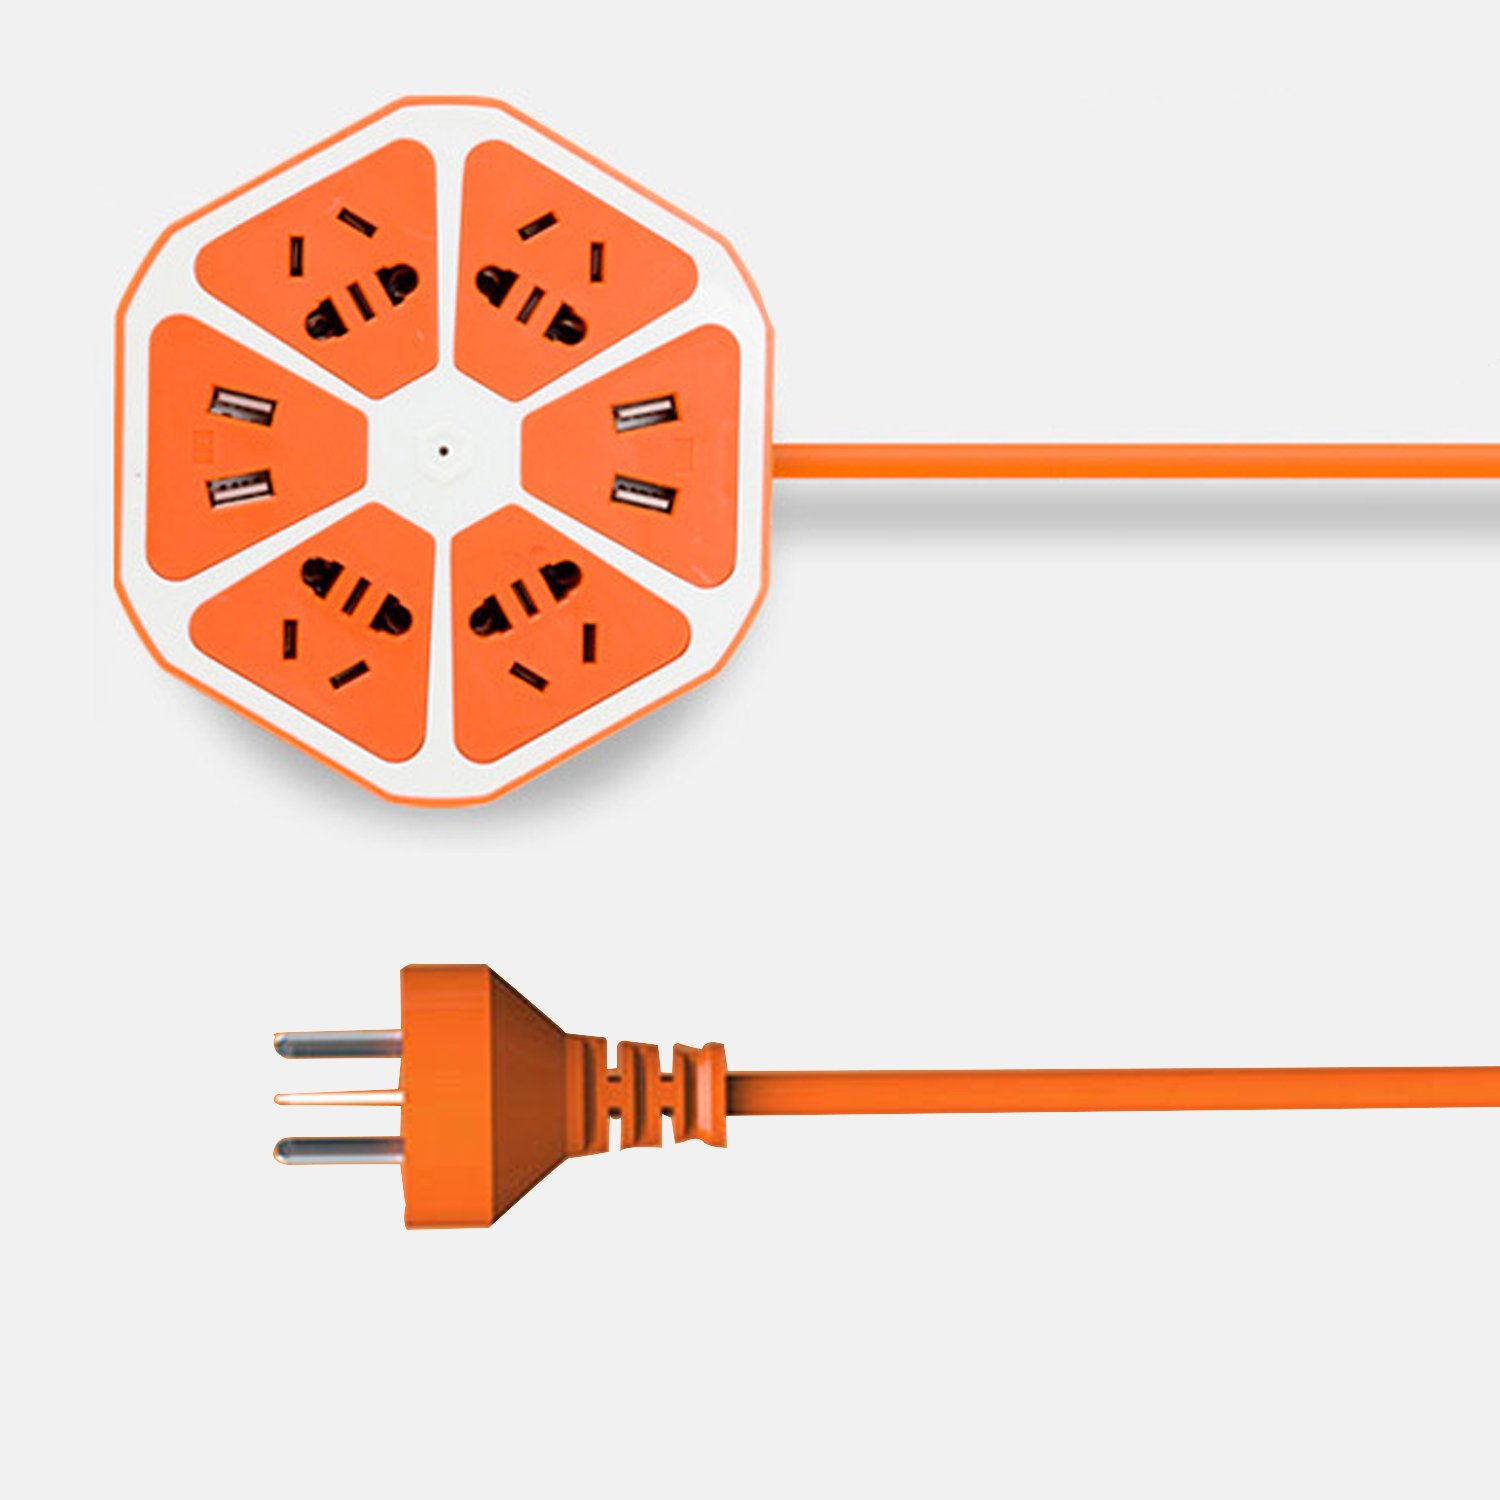 USB Power Strip Travel Charger Surge Protector Outlets 5ft 1.8m Long Cord with Universal Flat Plug Input from 100v-240v Power Sockets USB Charger Station 4 Port USB Charger Compact (Orange Yellow)